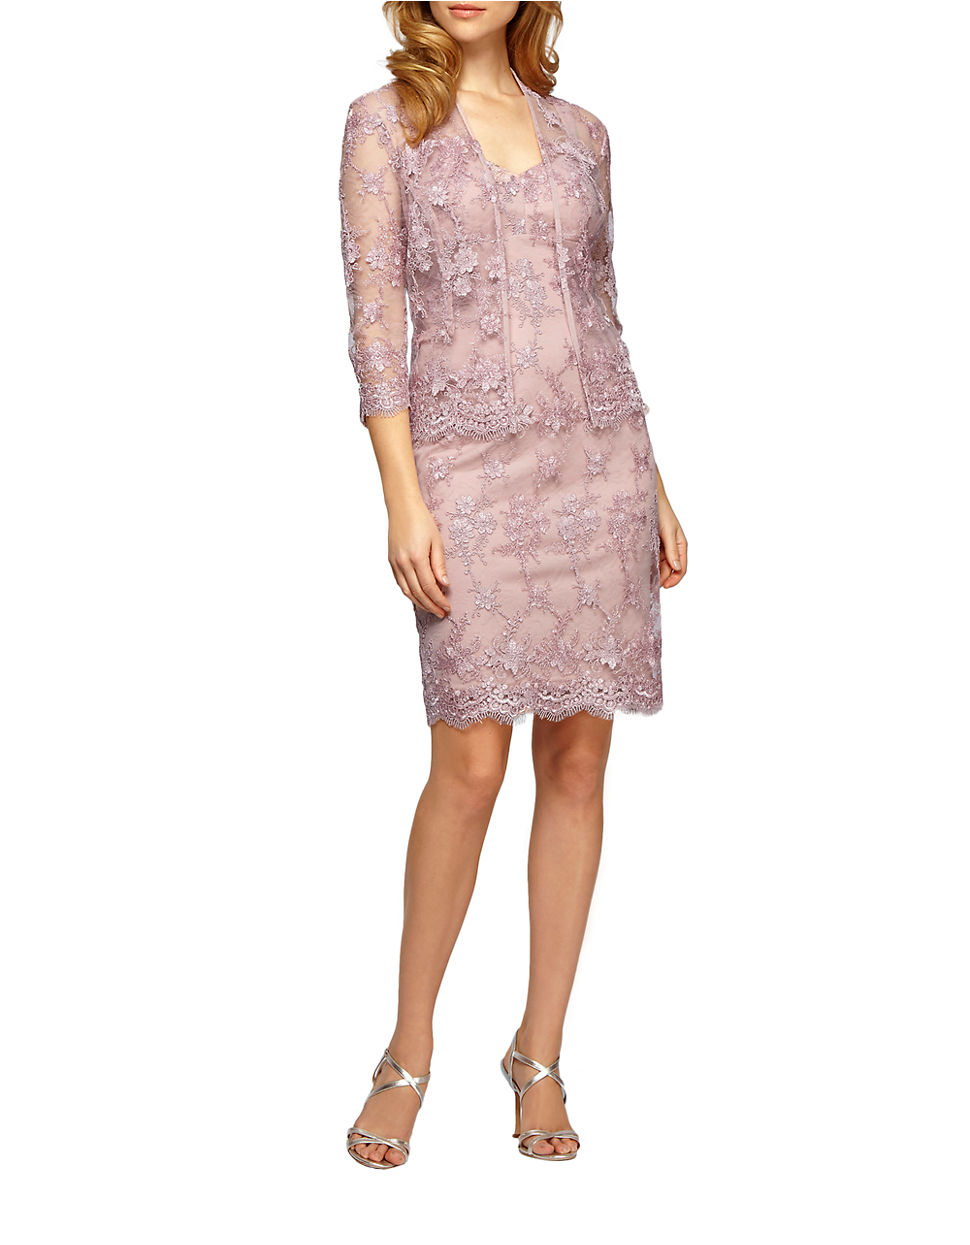 1ecdd6f3a49ef Alex Evenings Two-piece Lace Sheath Dress And Jacket Set in Pink - Lyst